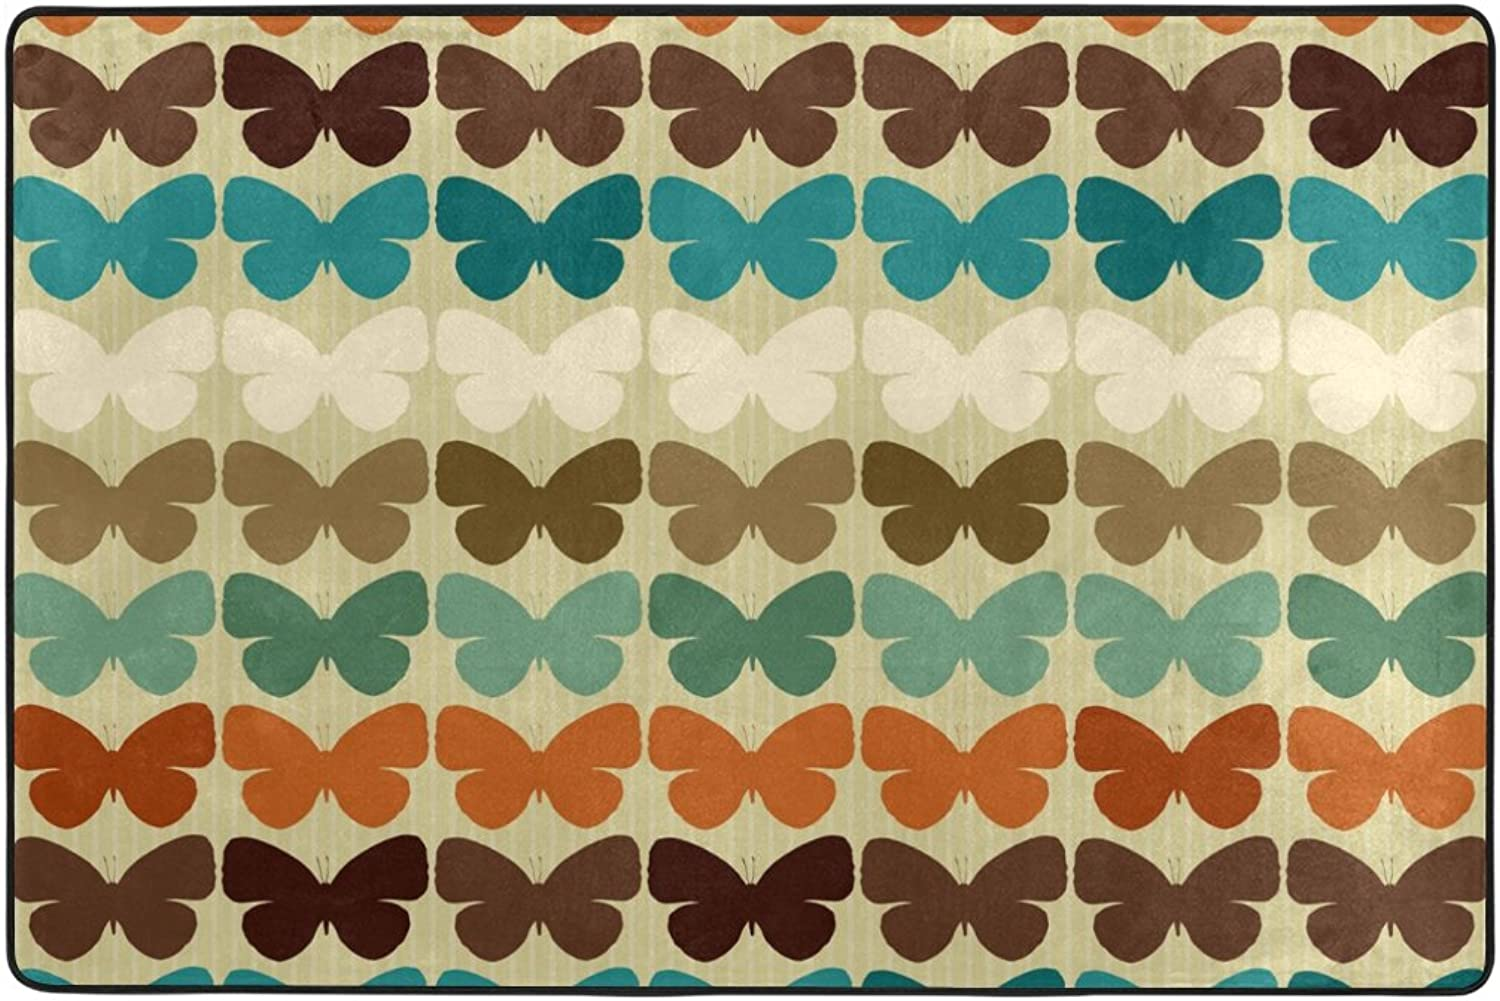 Hengpai Butterflies in Restro Style Print Area Rugs Skid Resistance Polyester Floor Mats Living Room Size 36 x 24 inch